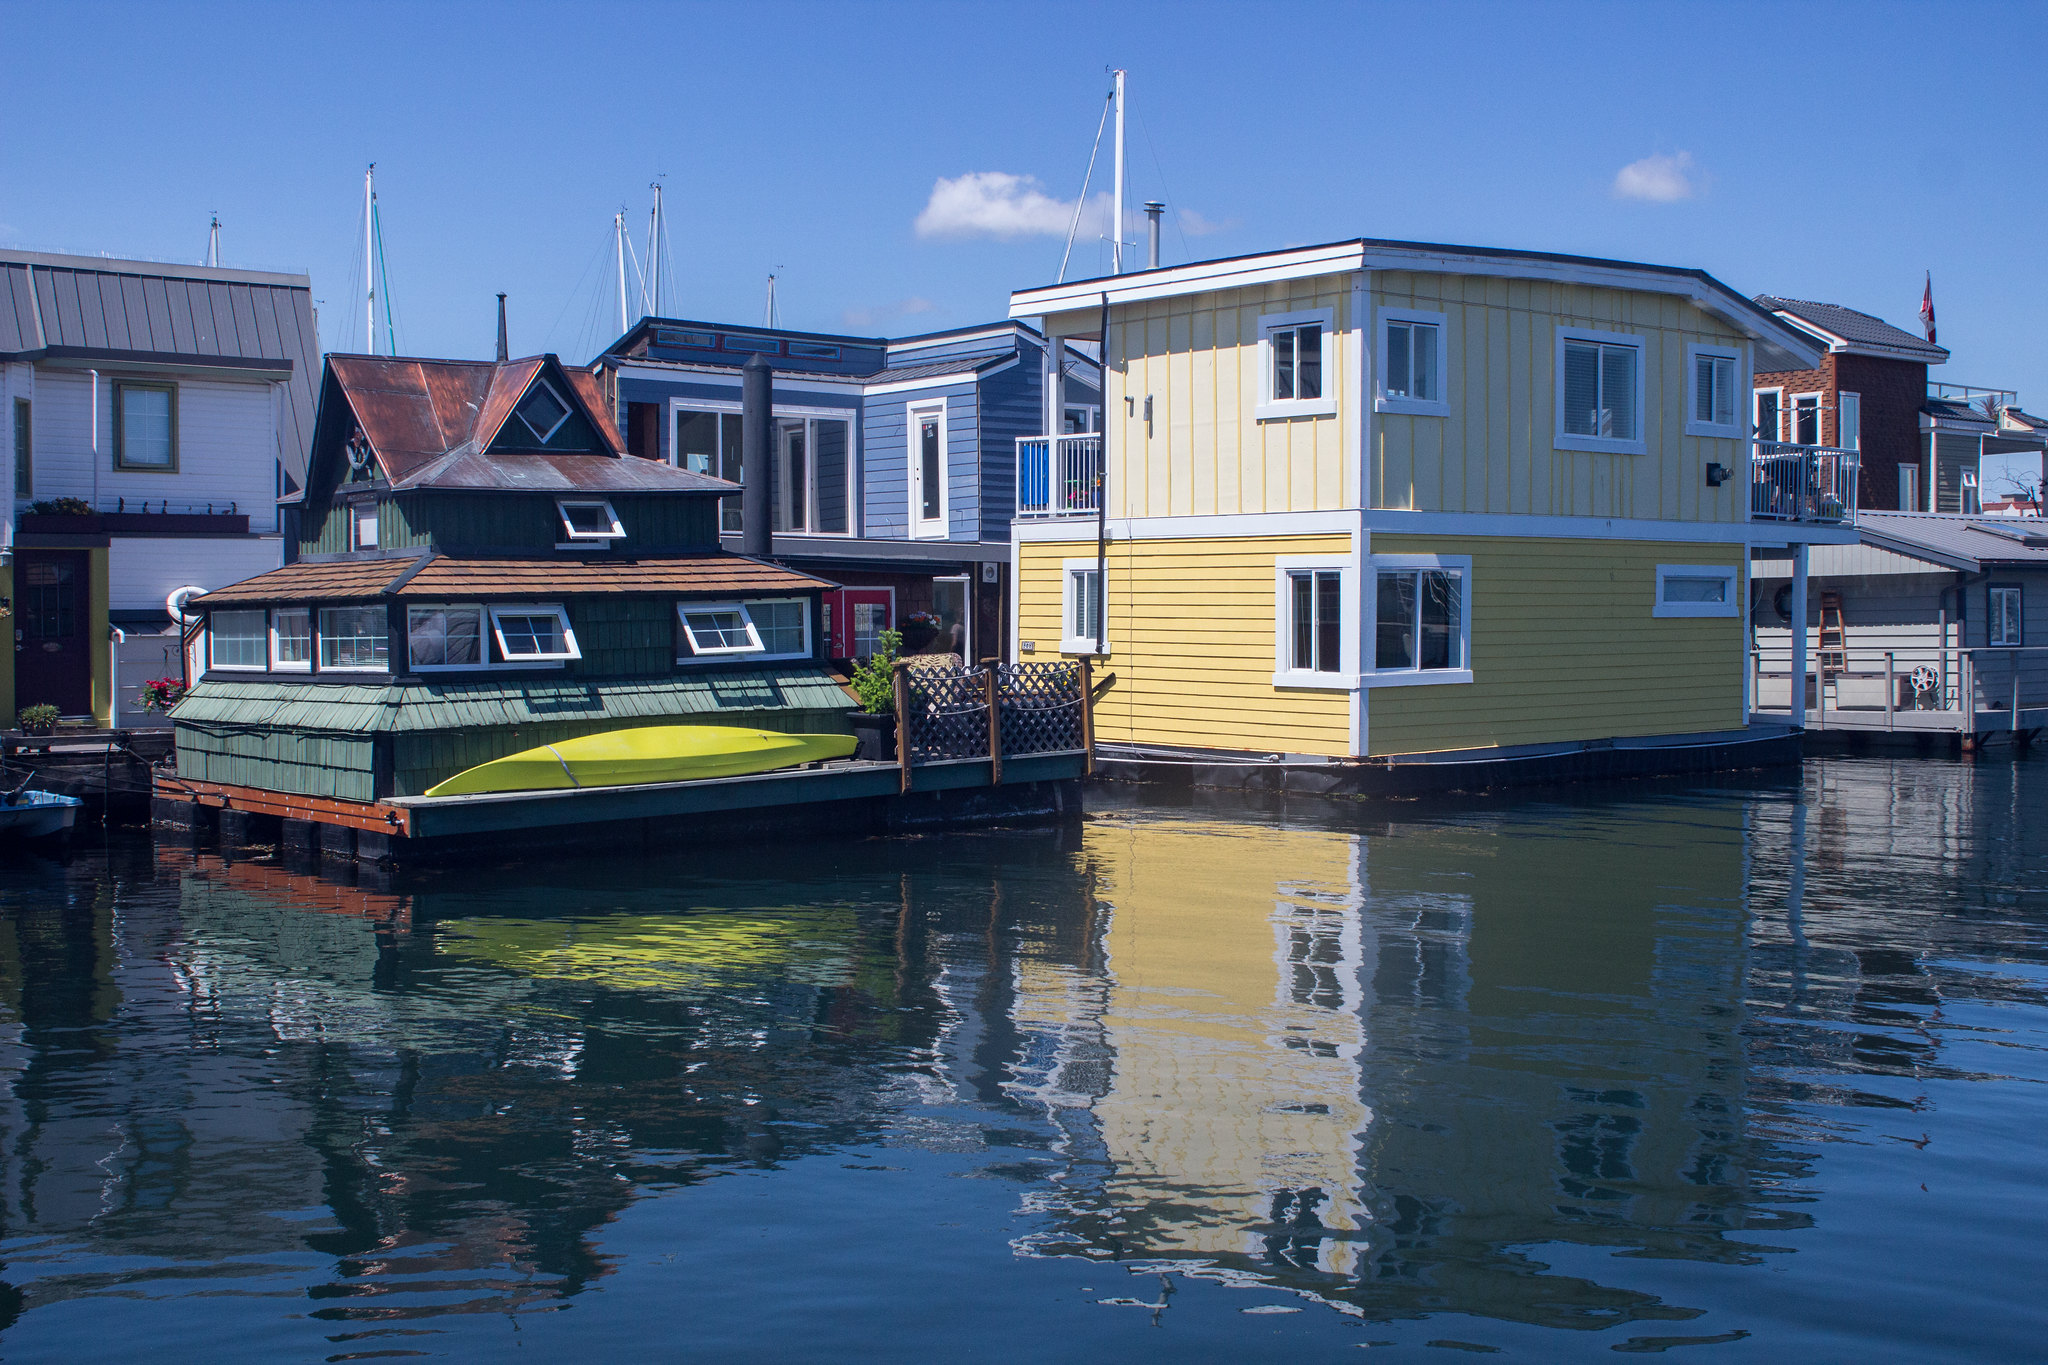 One day in Victoria; marvel at the cute, colourful houses in Fisherman's Wharf